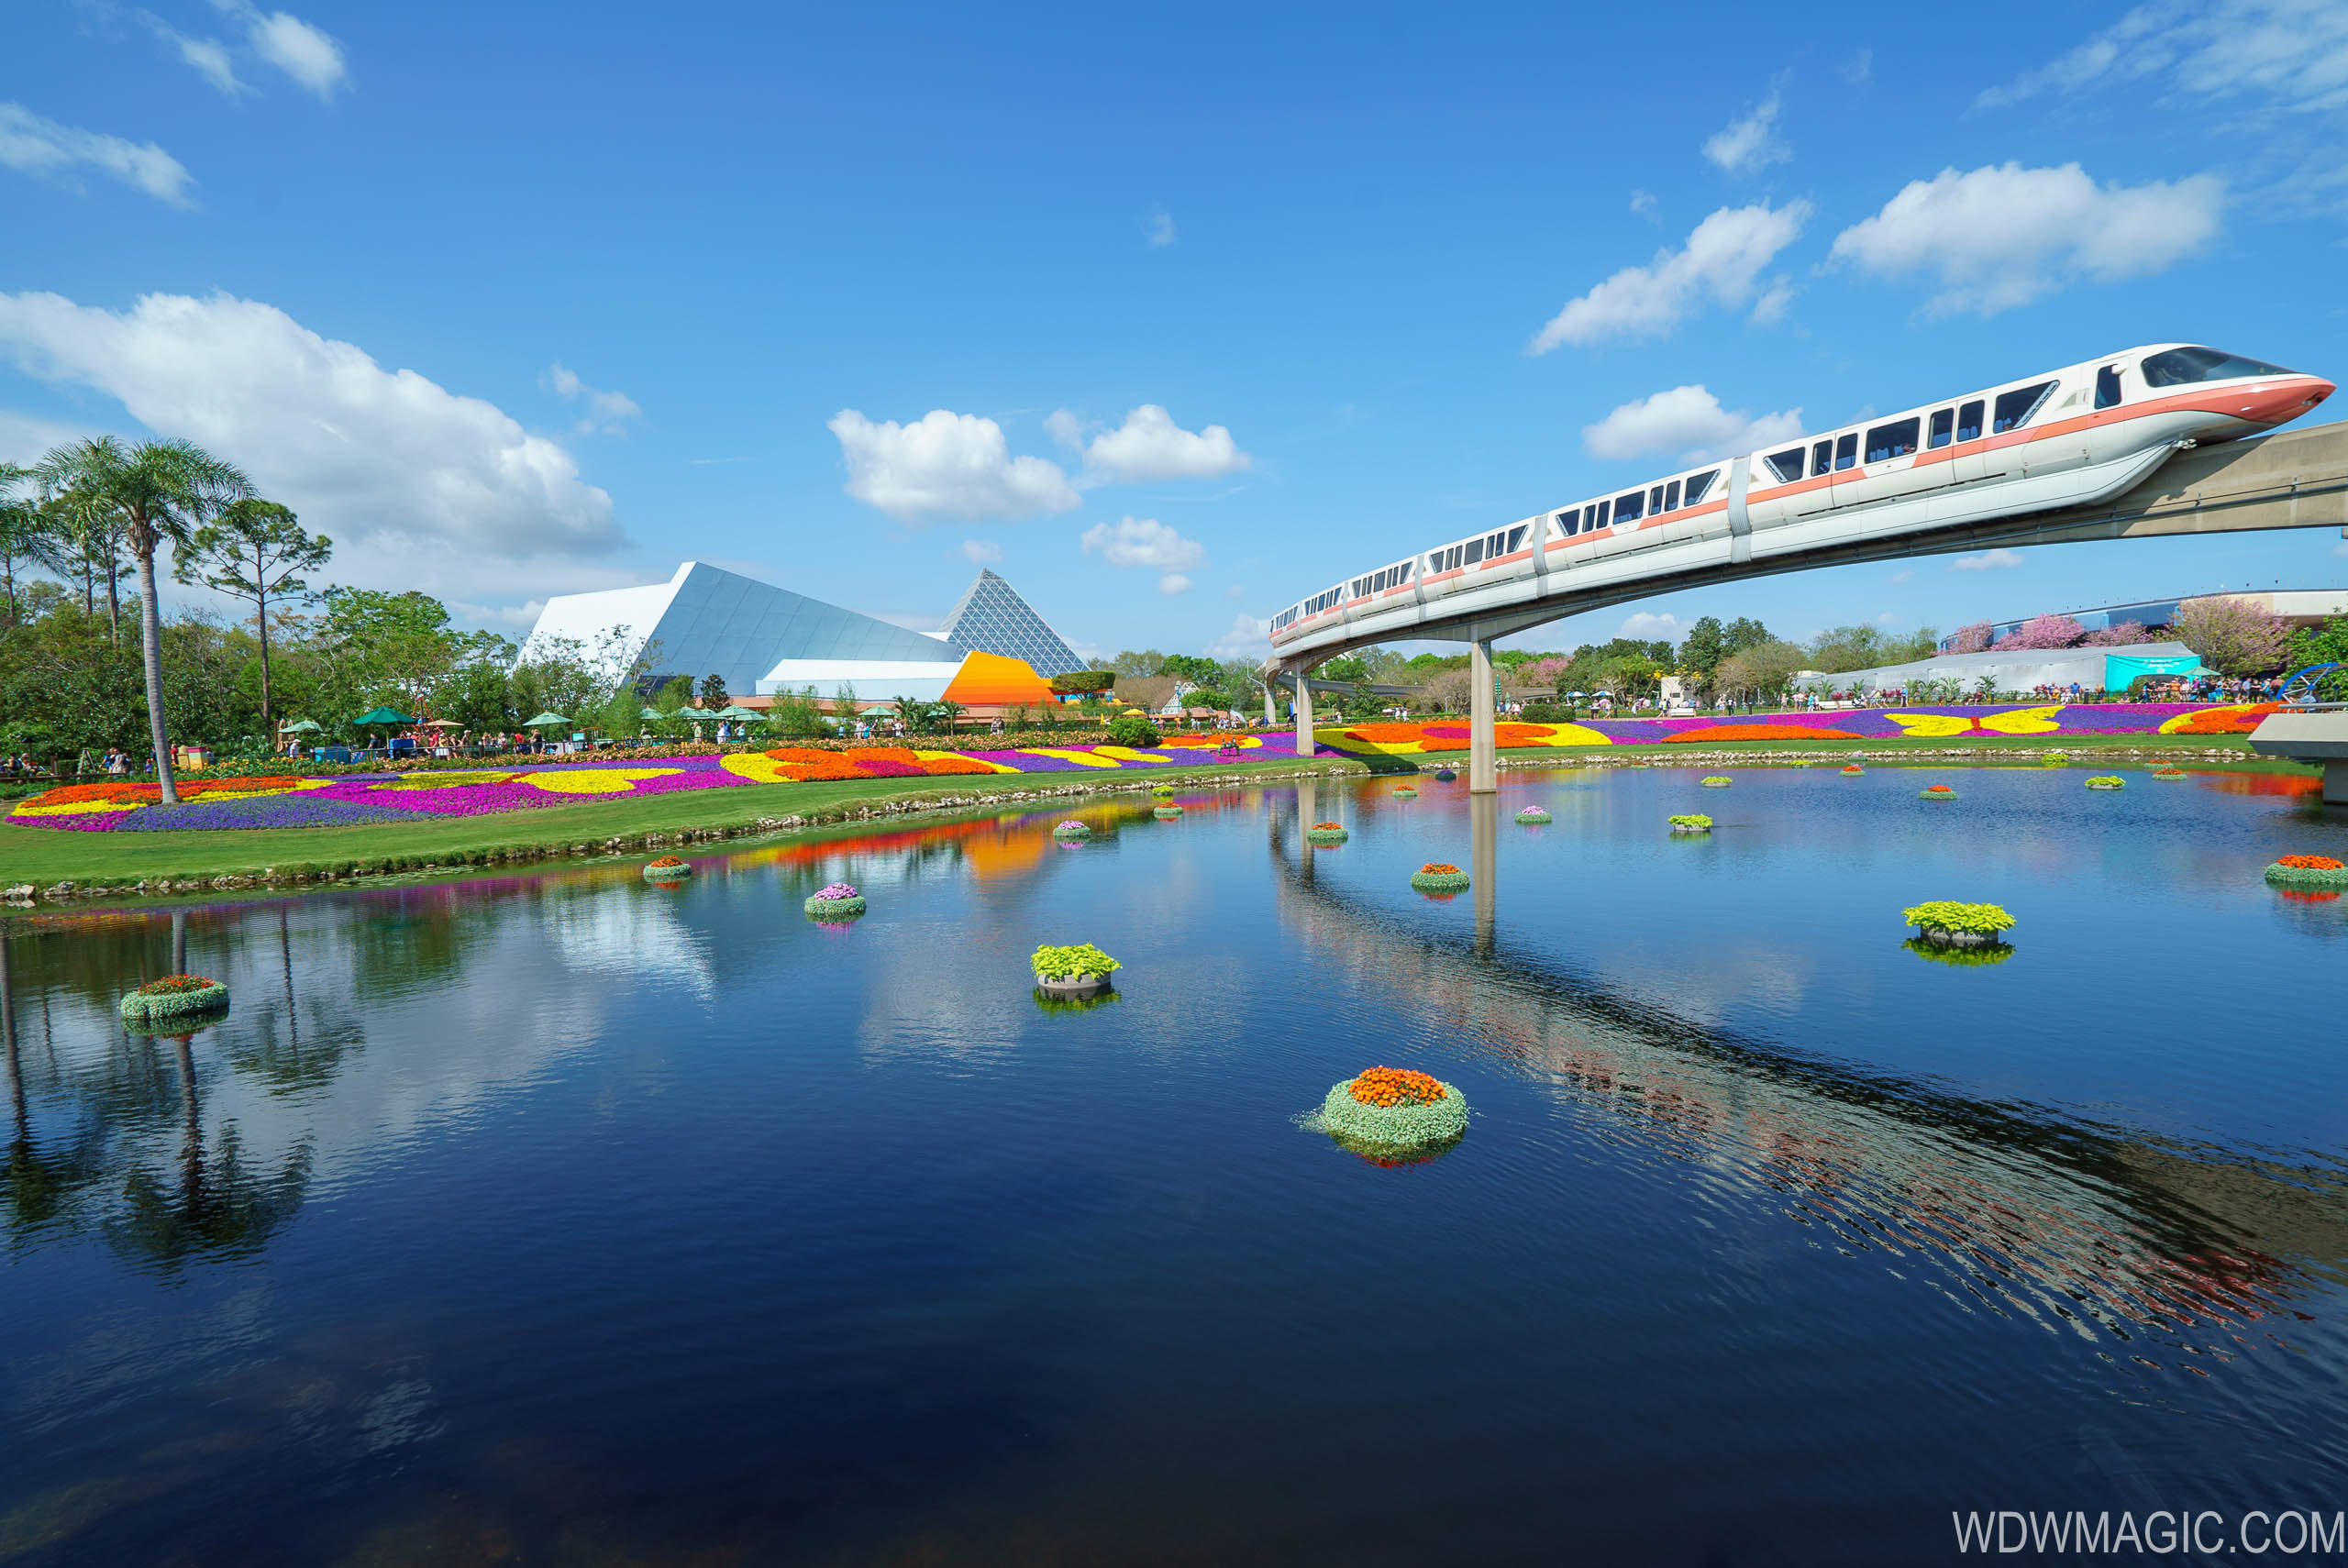 Epcot Flower and garden Festival in full bloom